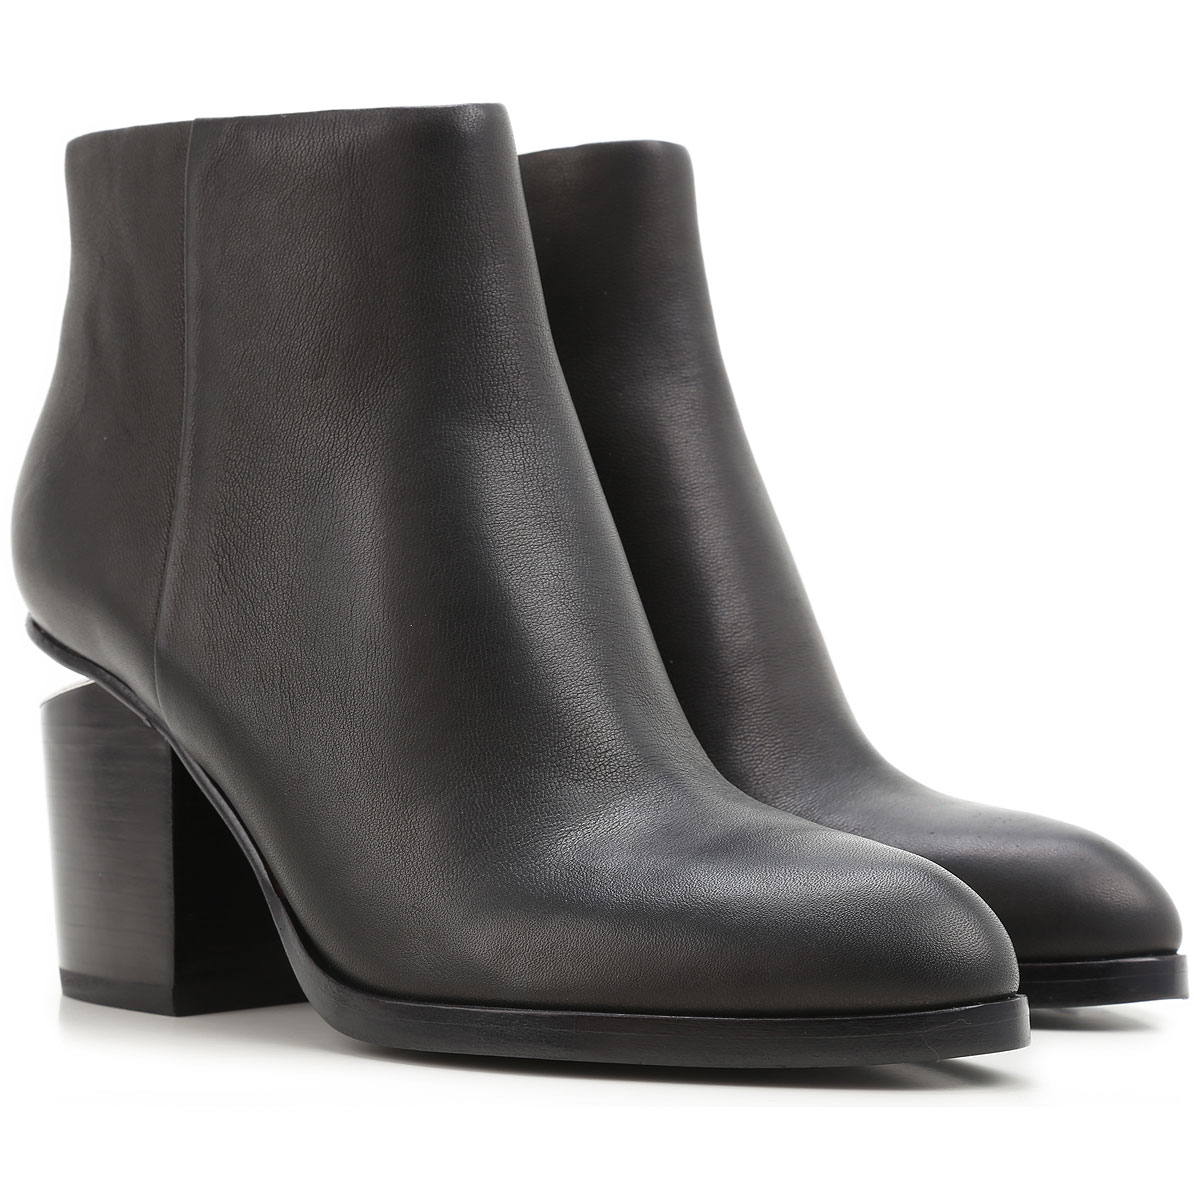 Image of Alexander Wang Boots for Women, Booties On Sale in Outlet, Black, Leather, 2017, 5 5.5 6 6.5 7 8.5 9